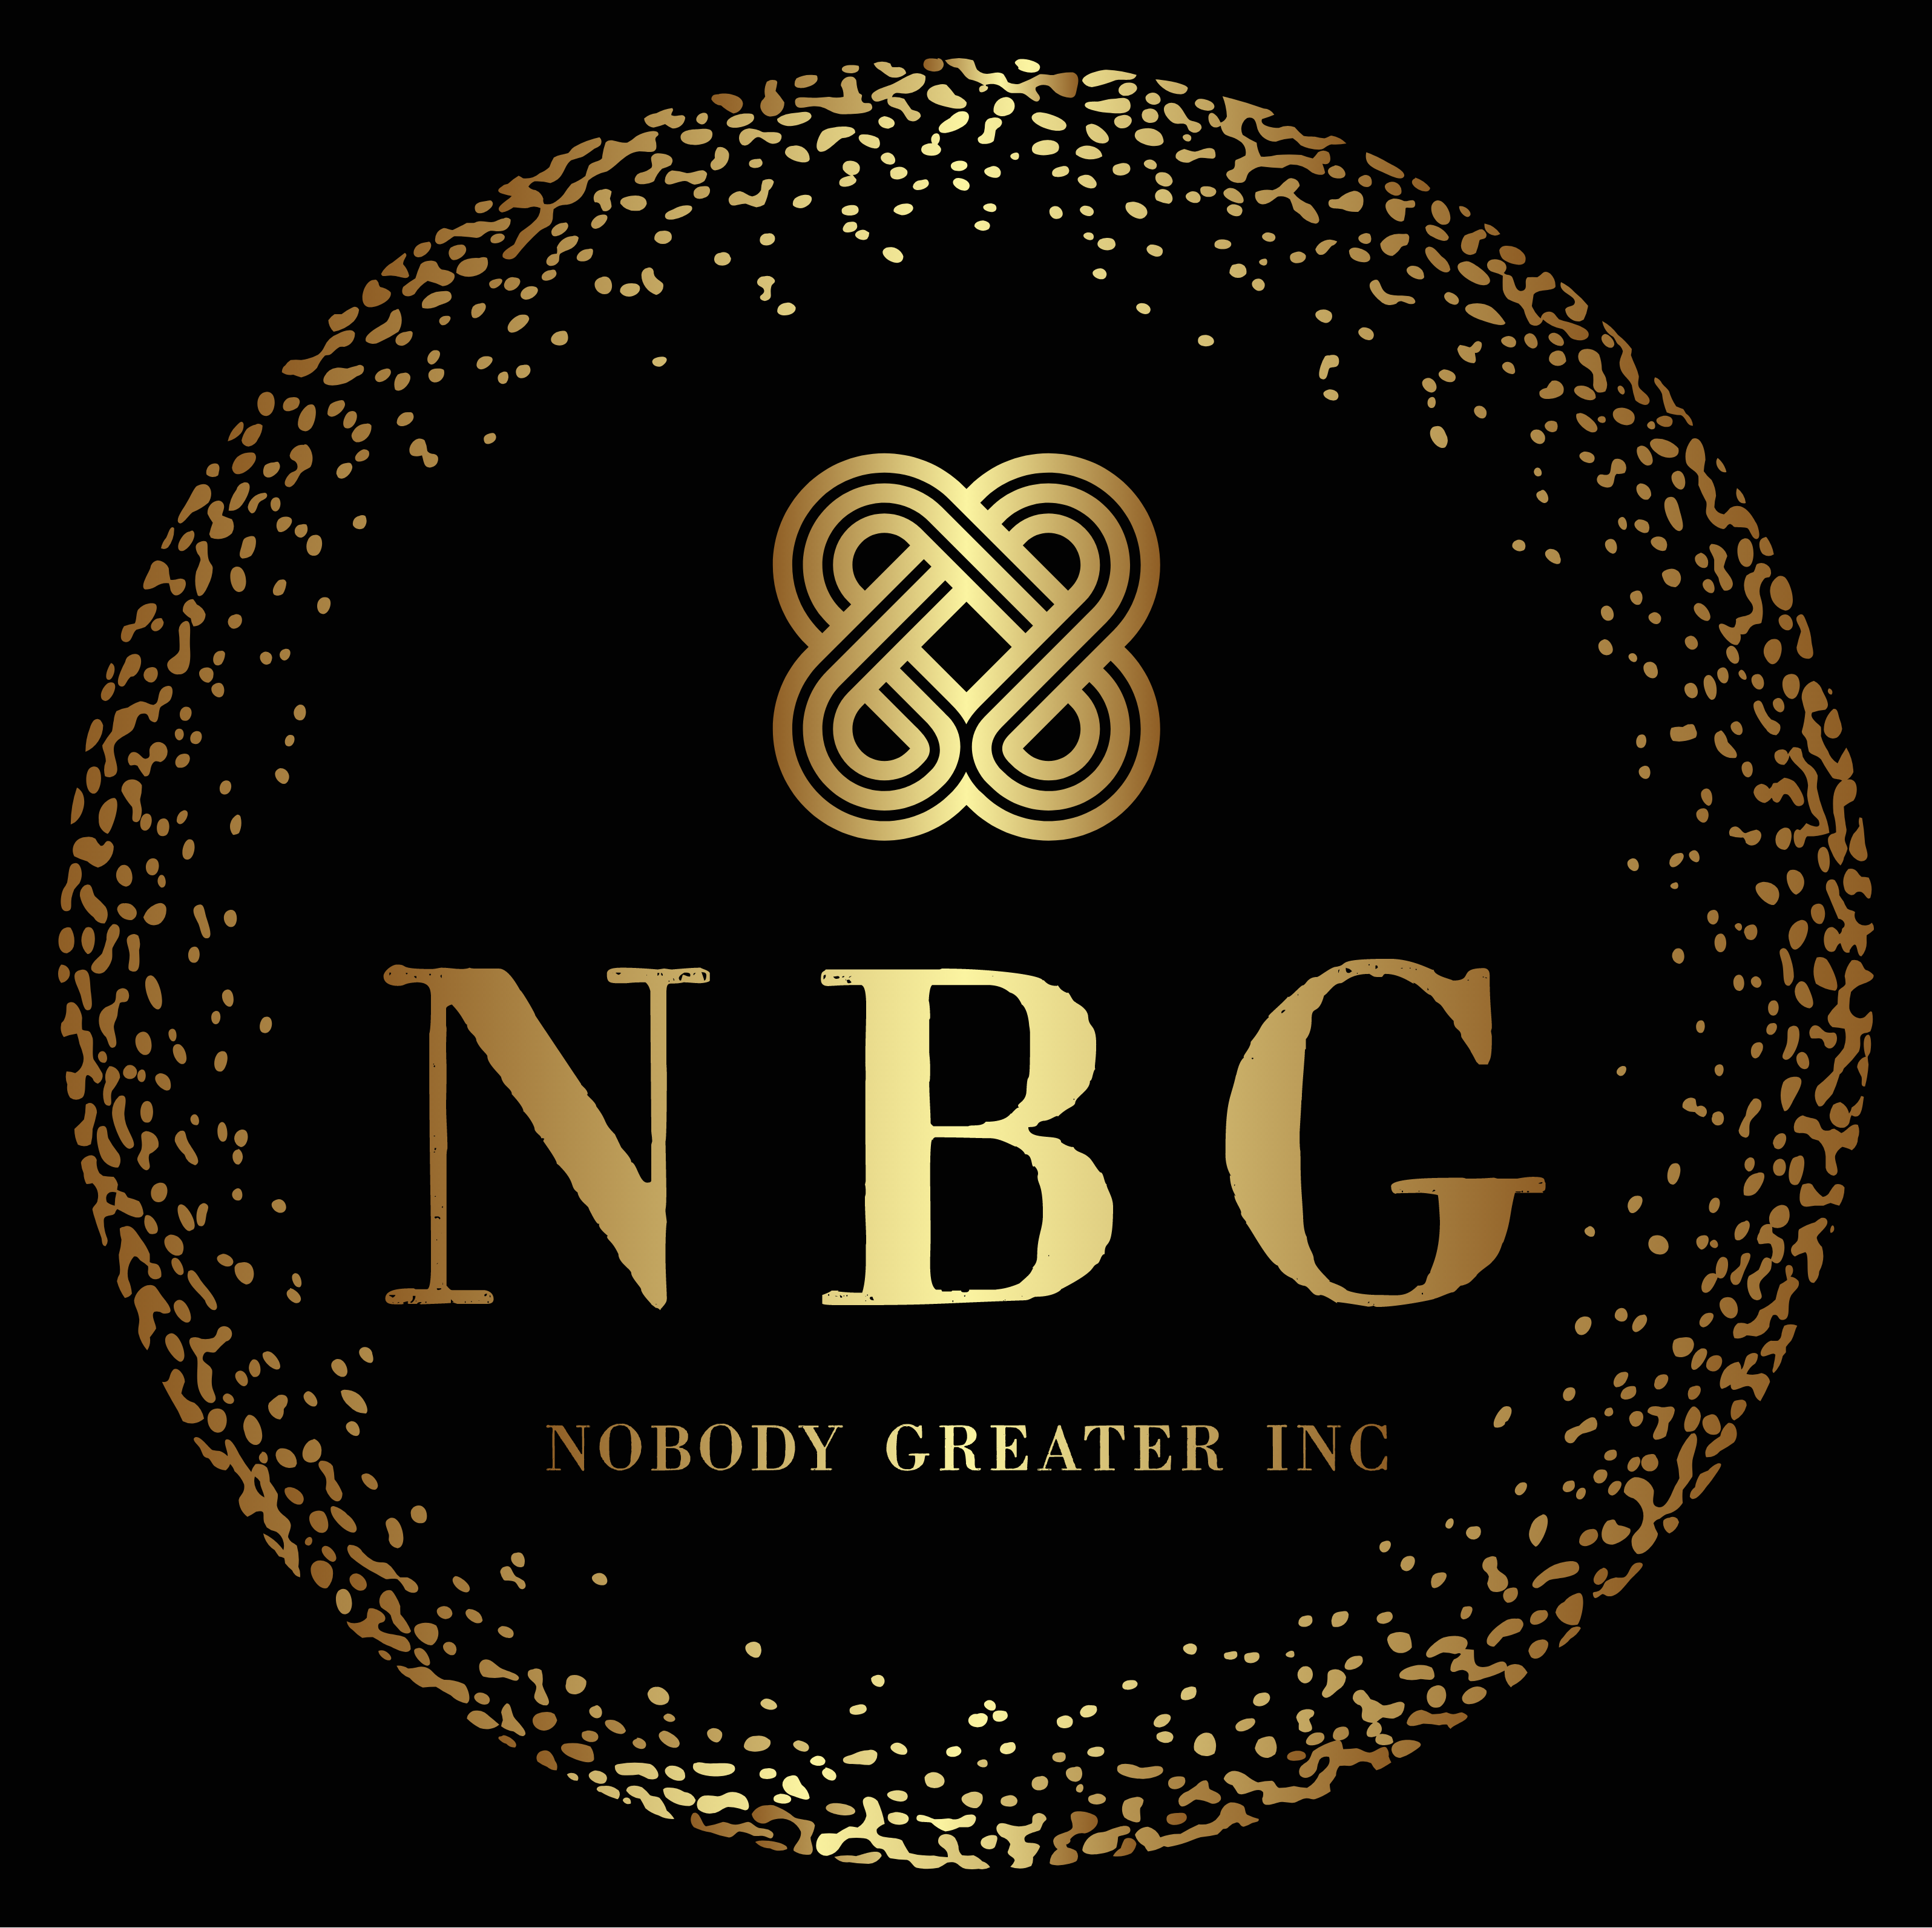 Nobody Greater Inc